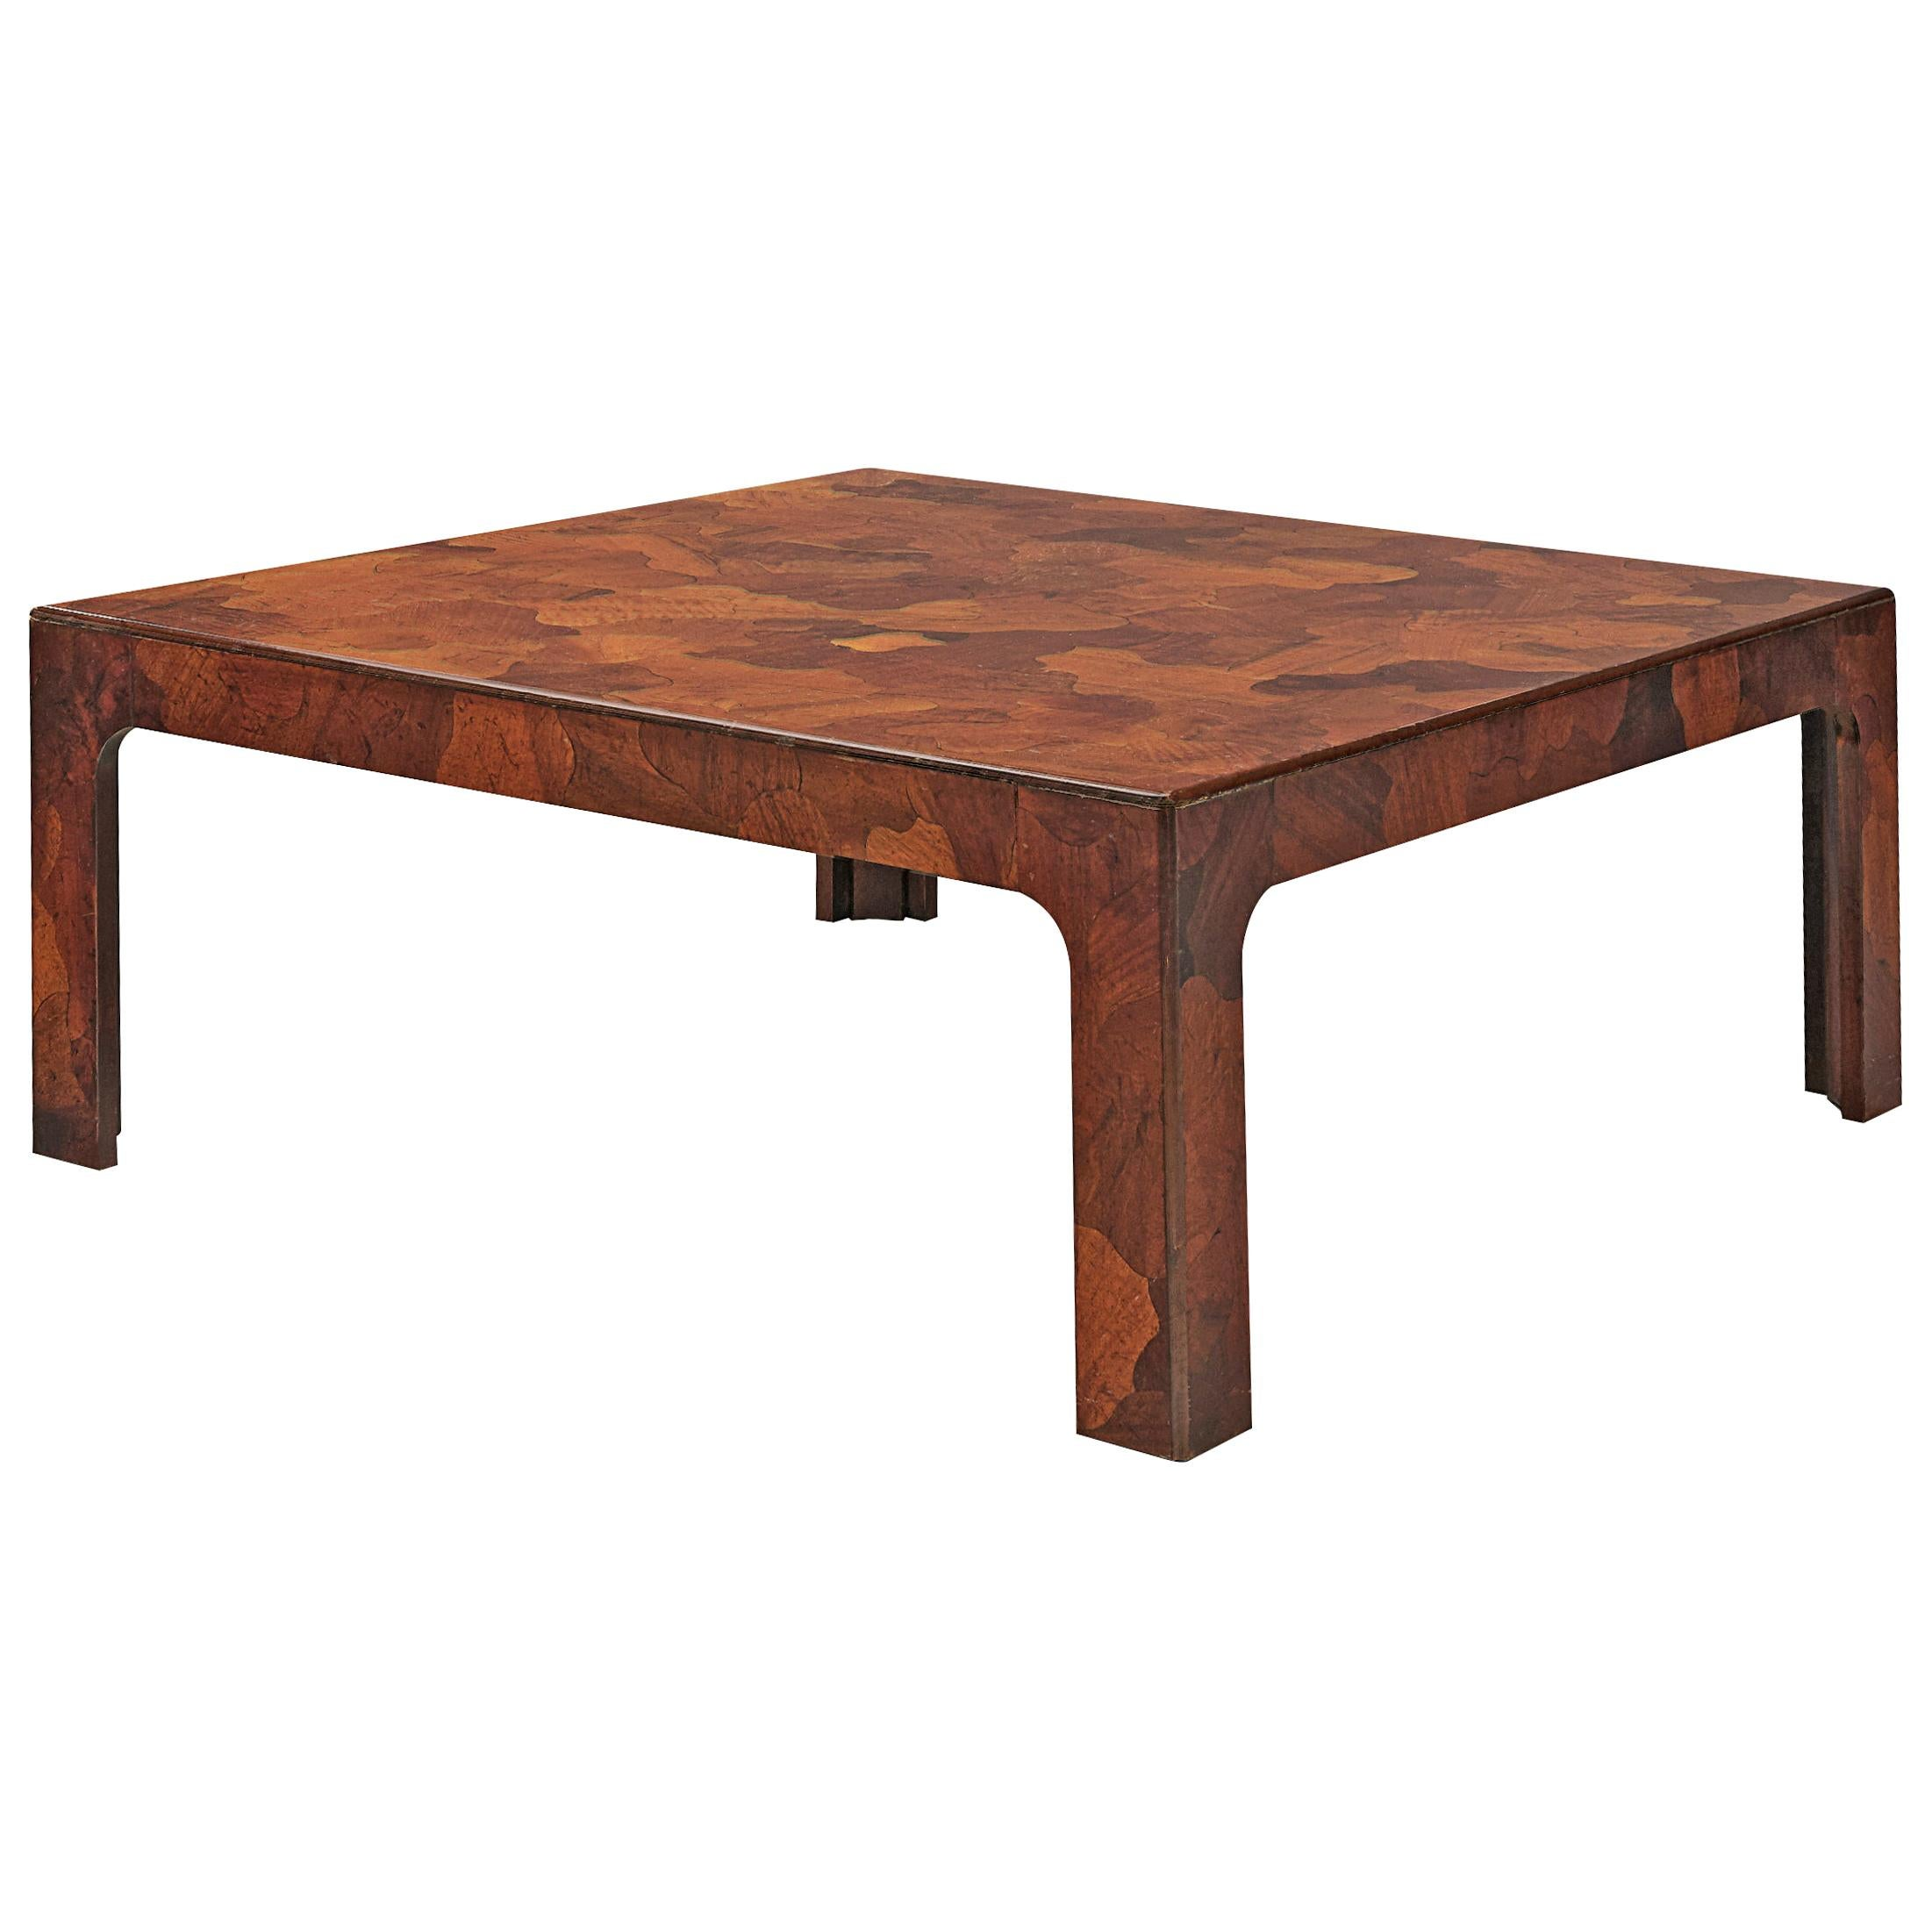 Square Coffee Table in American Walnut with Inlayed Top